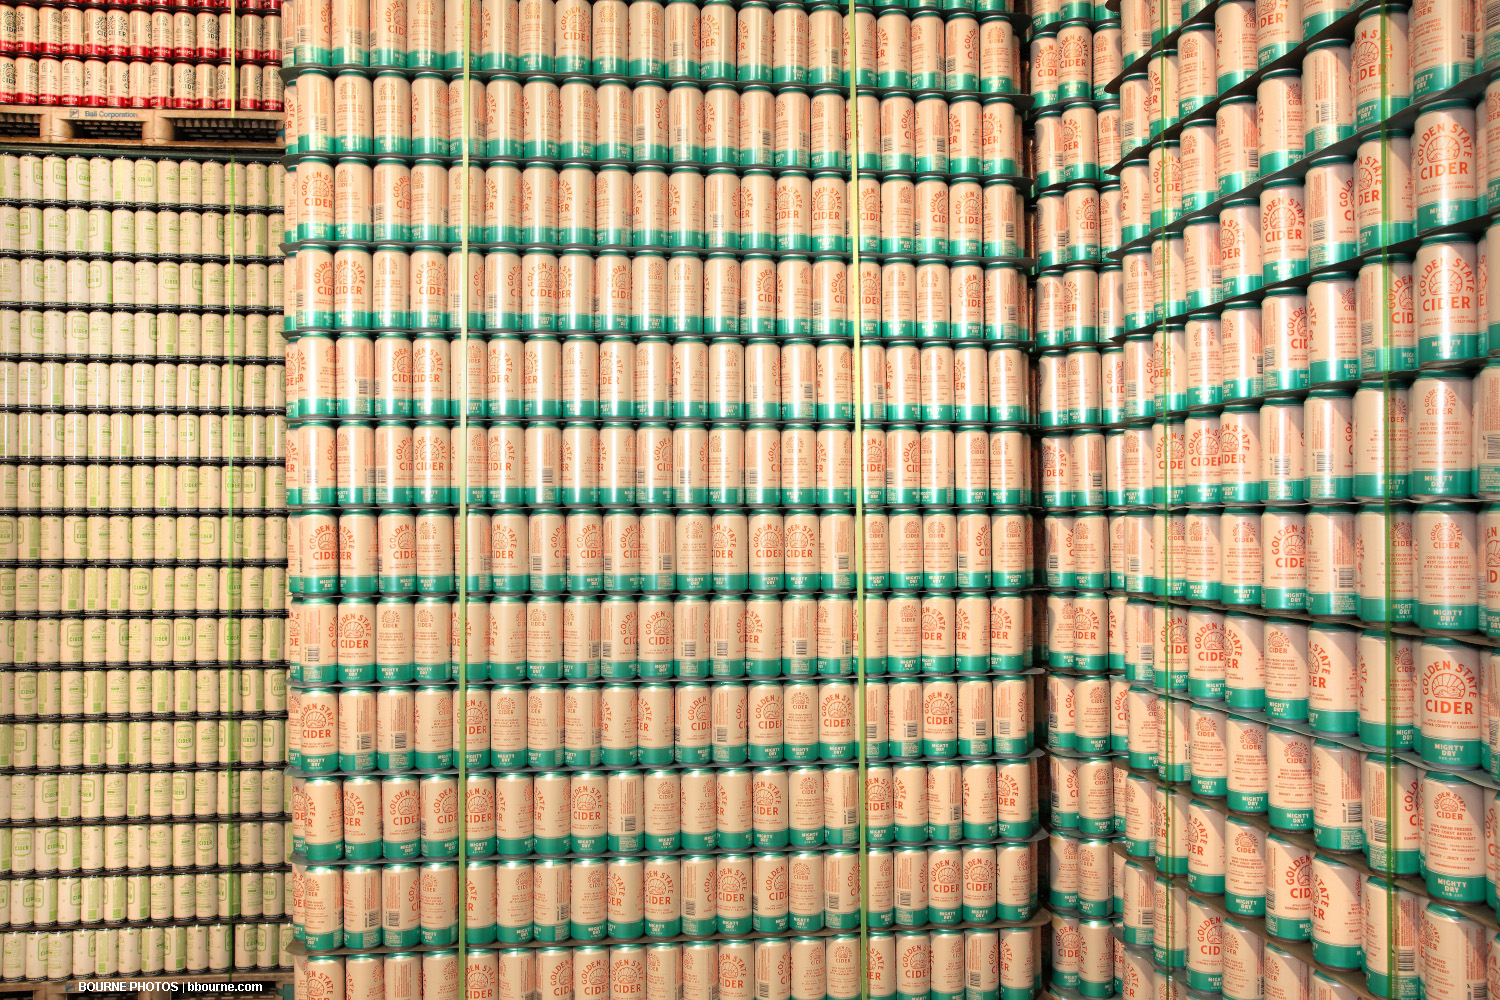 stacked cans of golden state cider on palettes